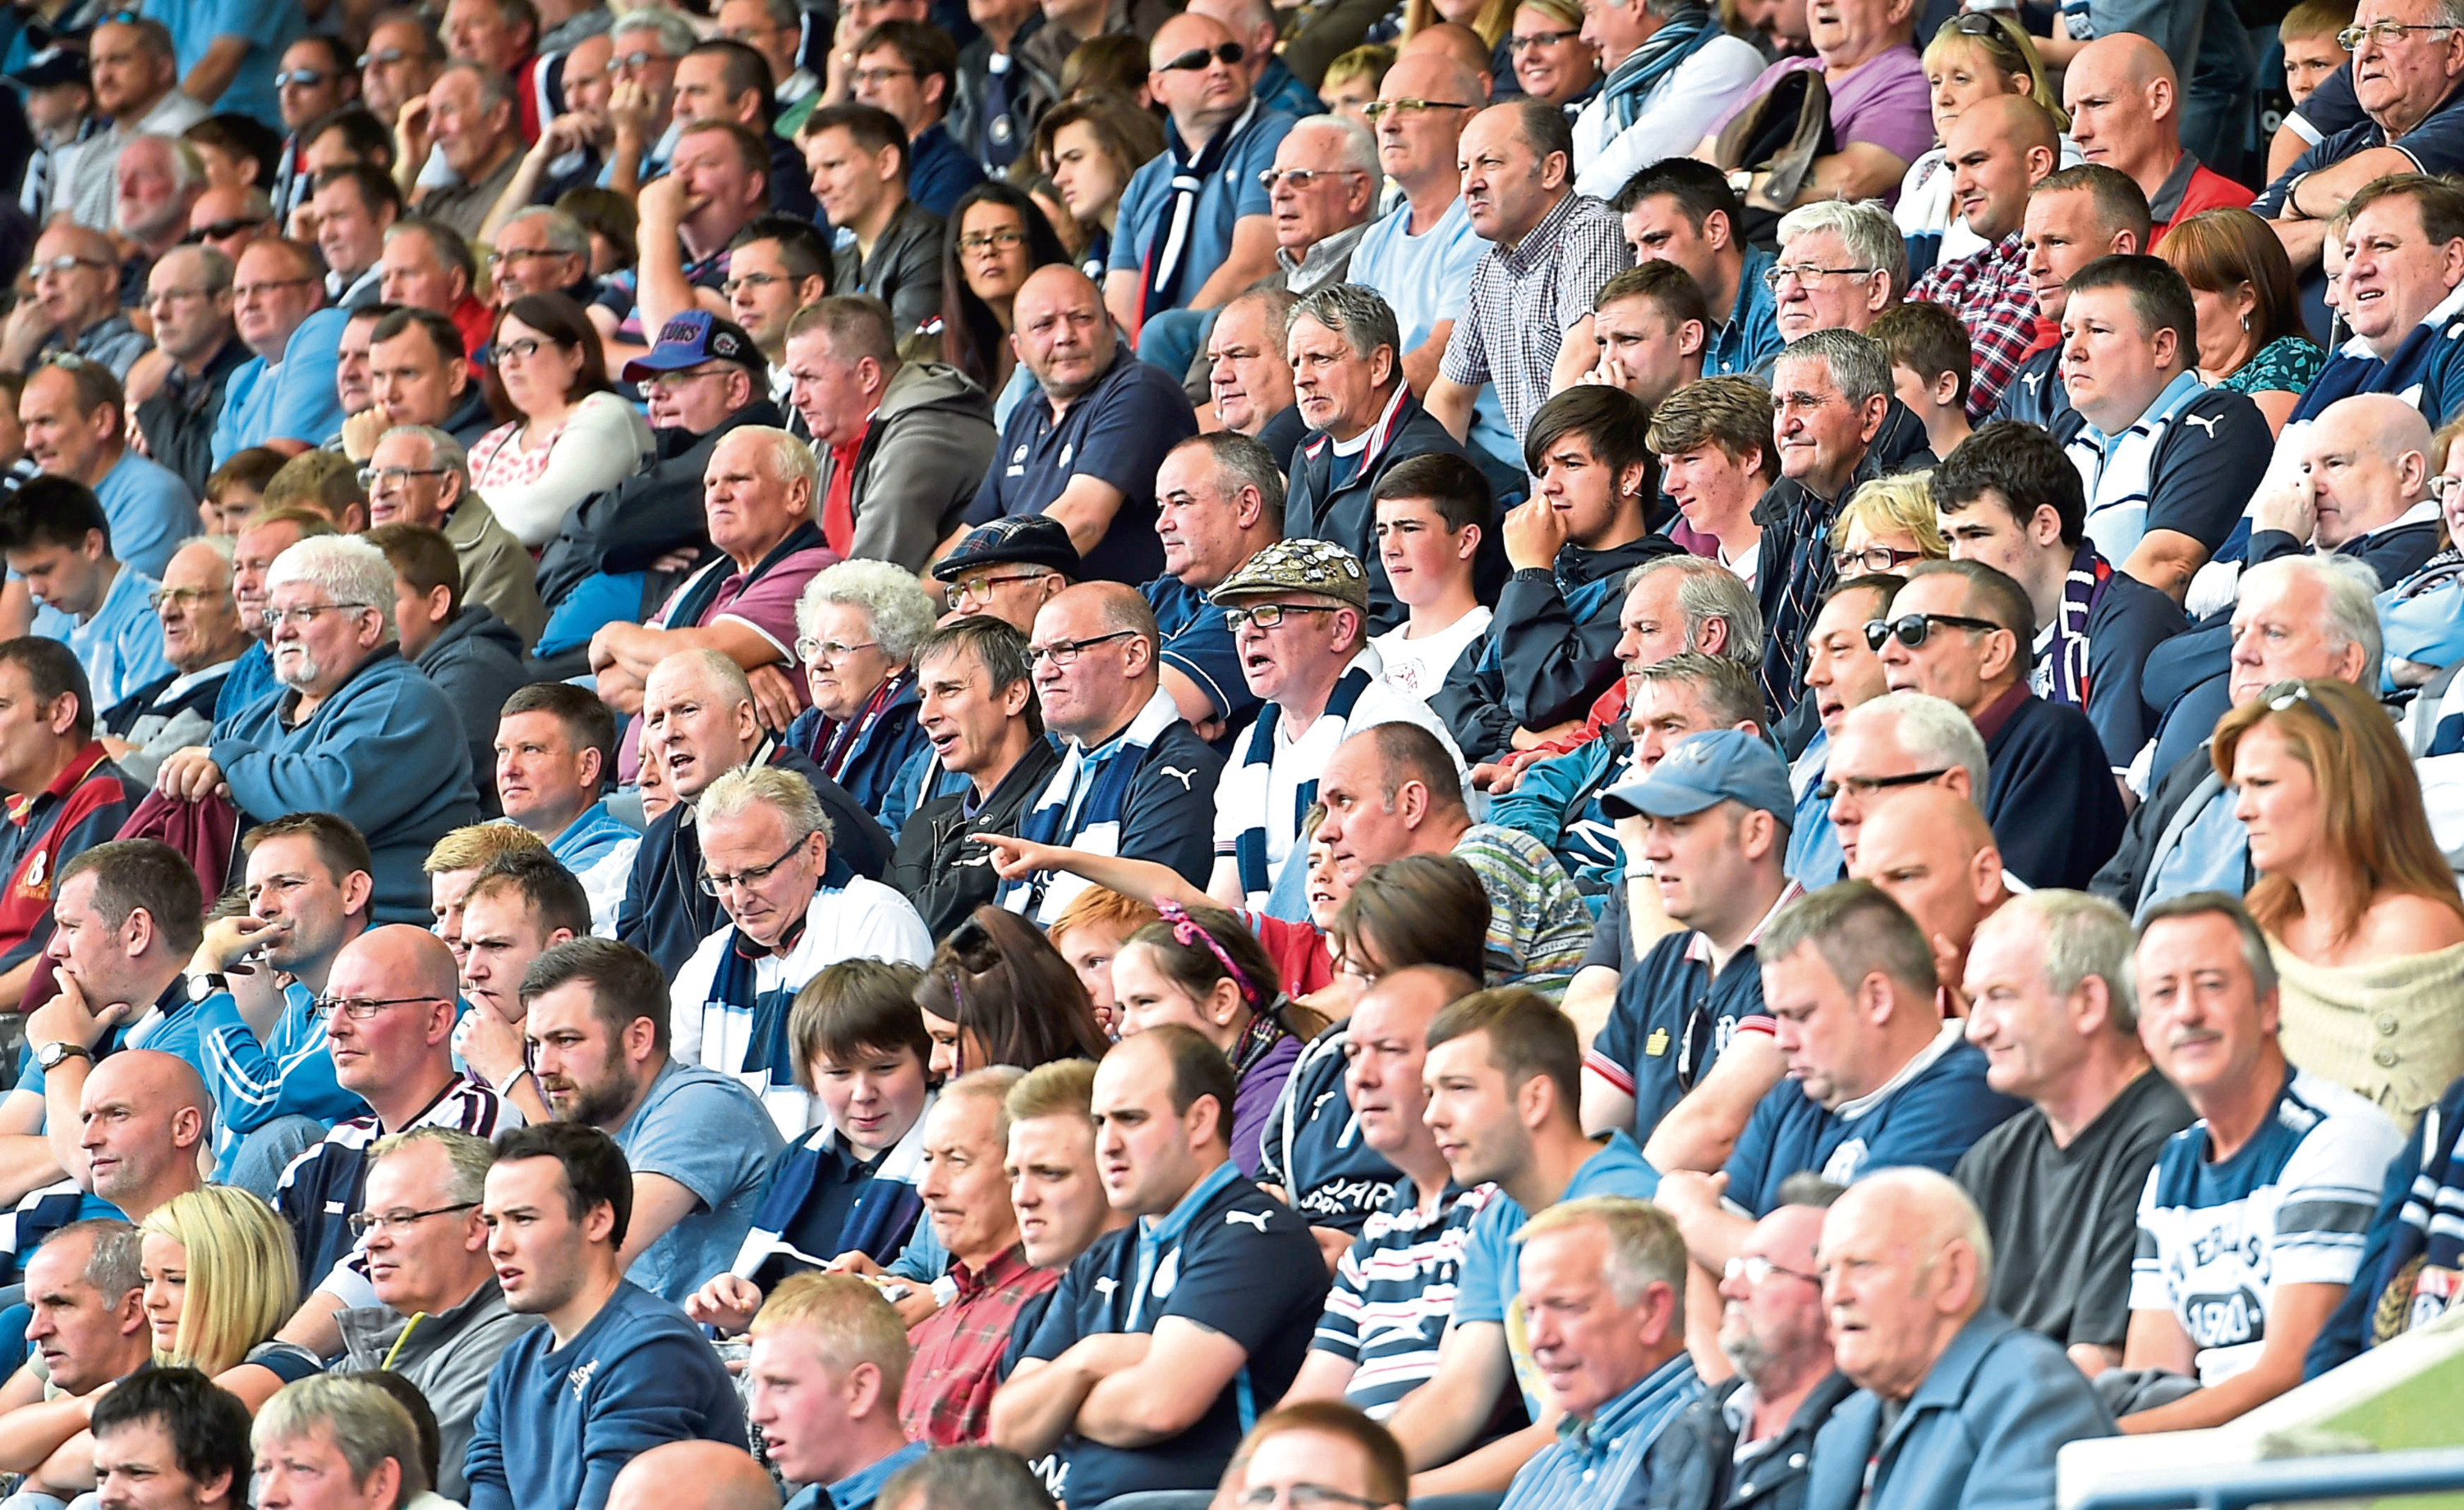 There had been growing calls for McIntyre to go from the stands, in the wake of a number of poor results this season.